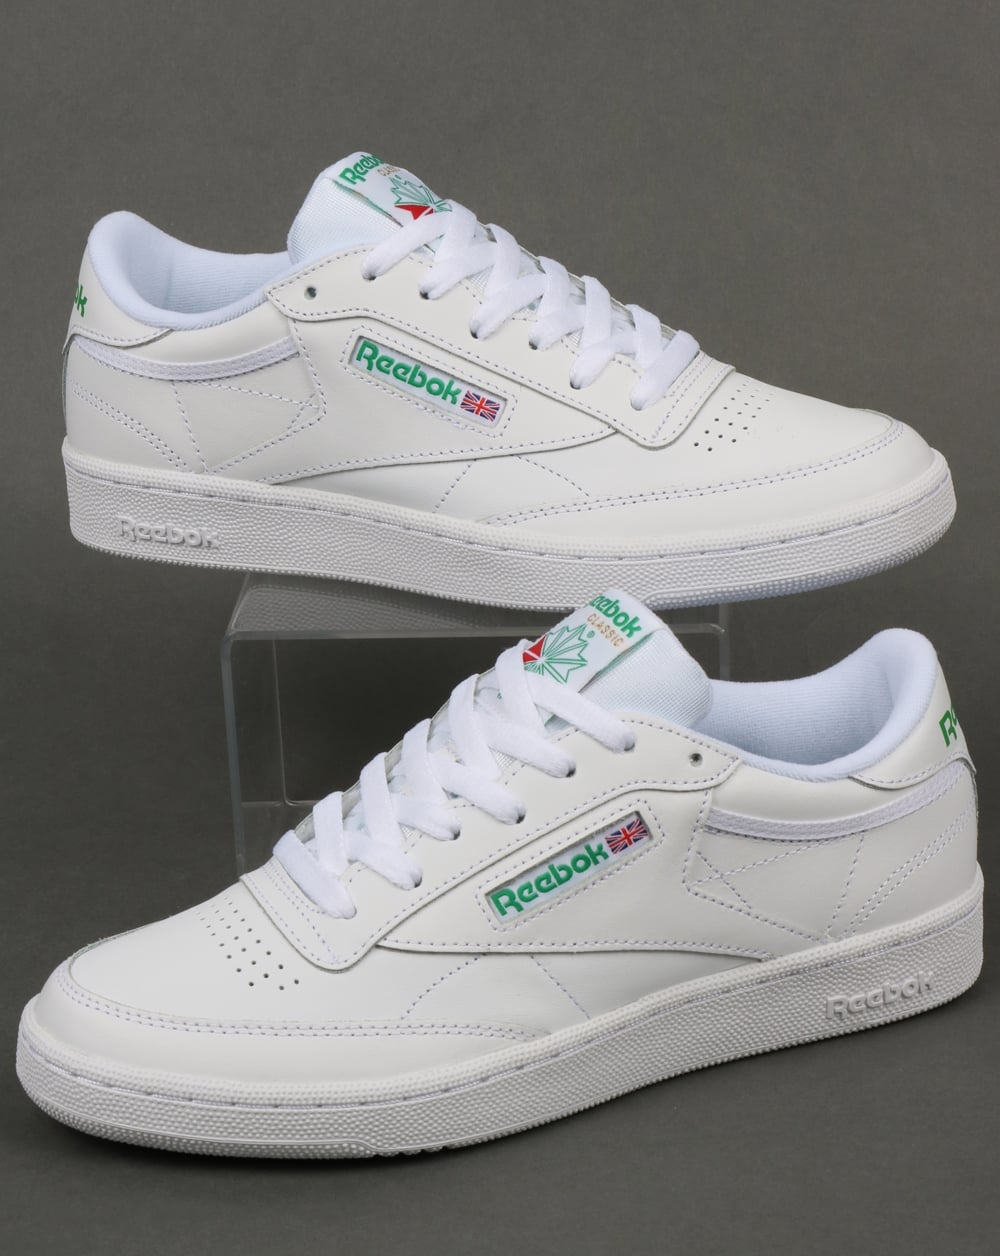 bb64cf8630b Reebok Reebok Club C 85 Trainers White Green